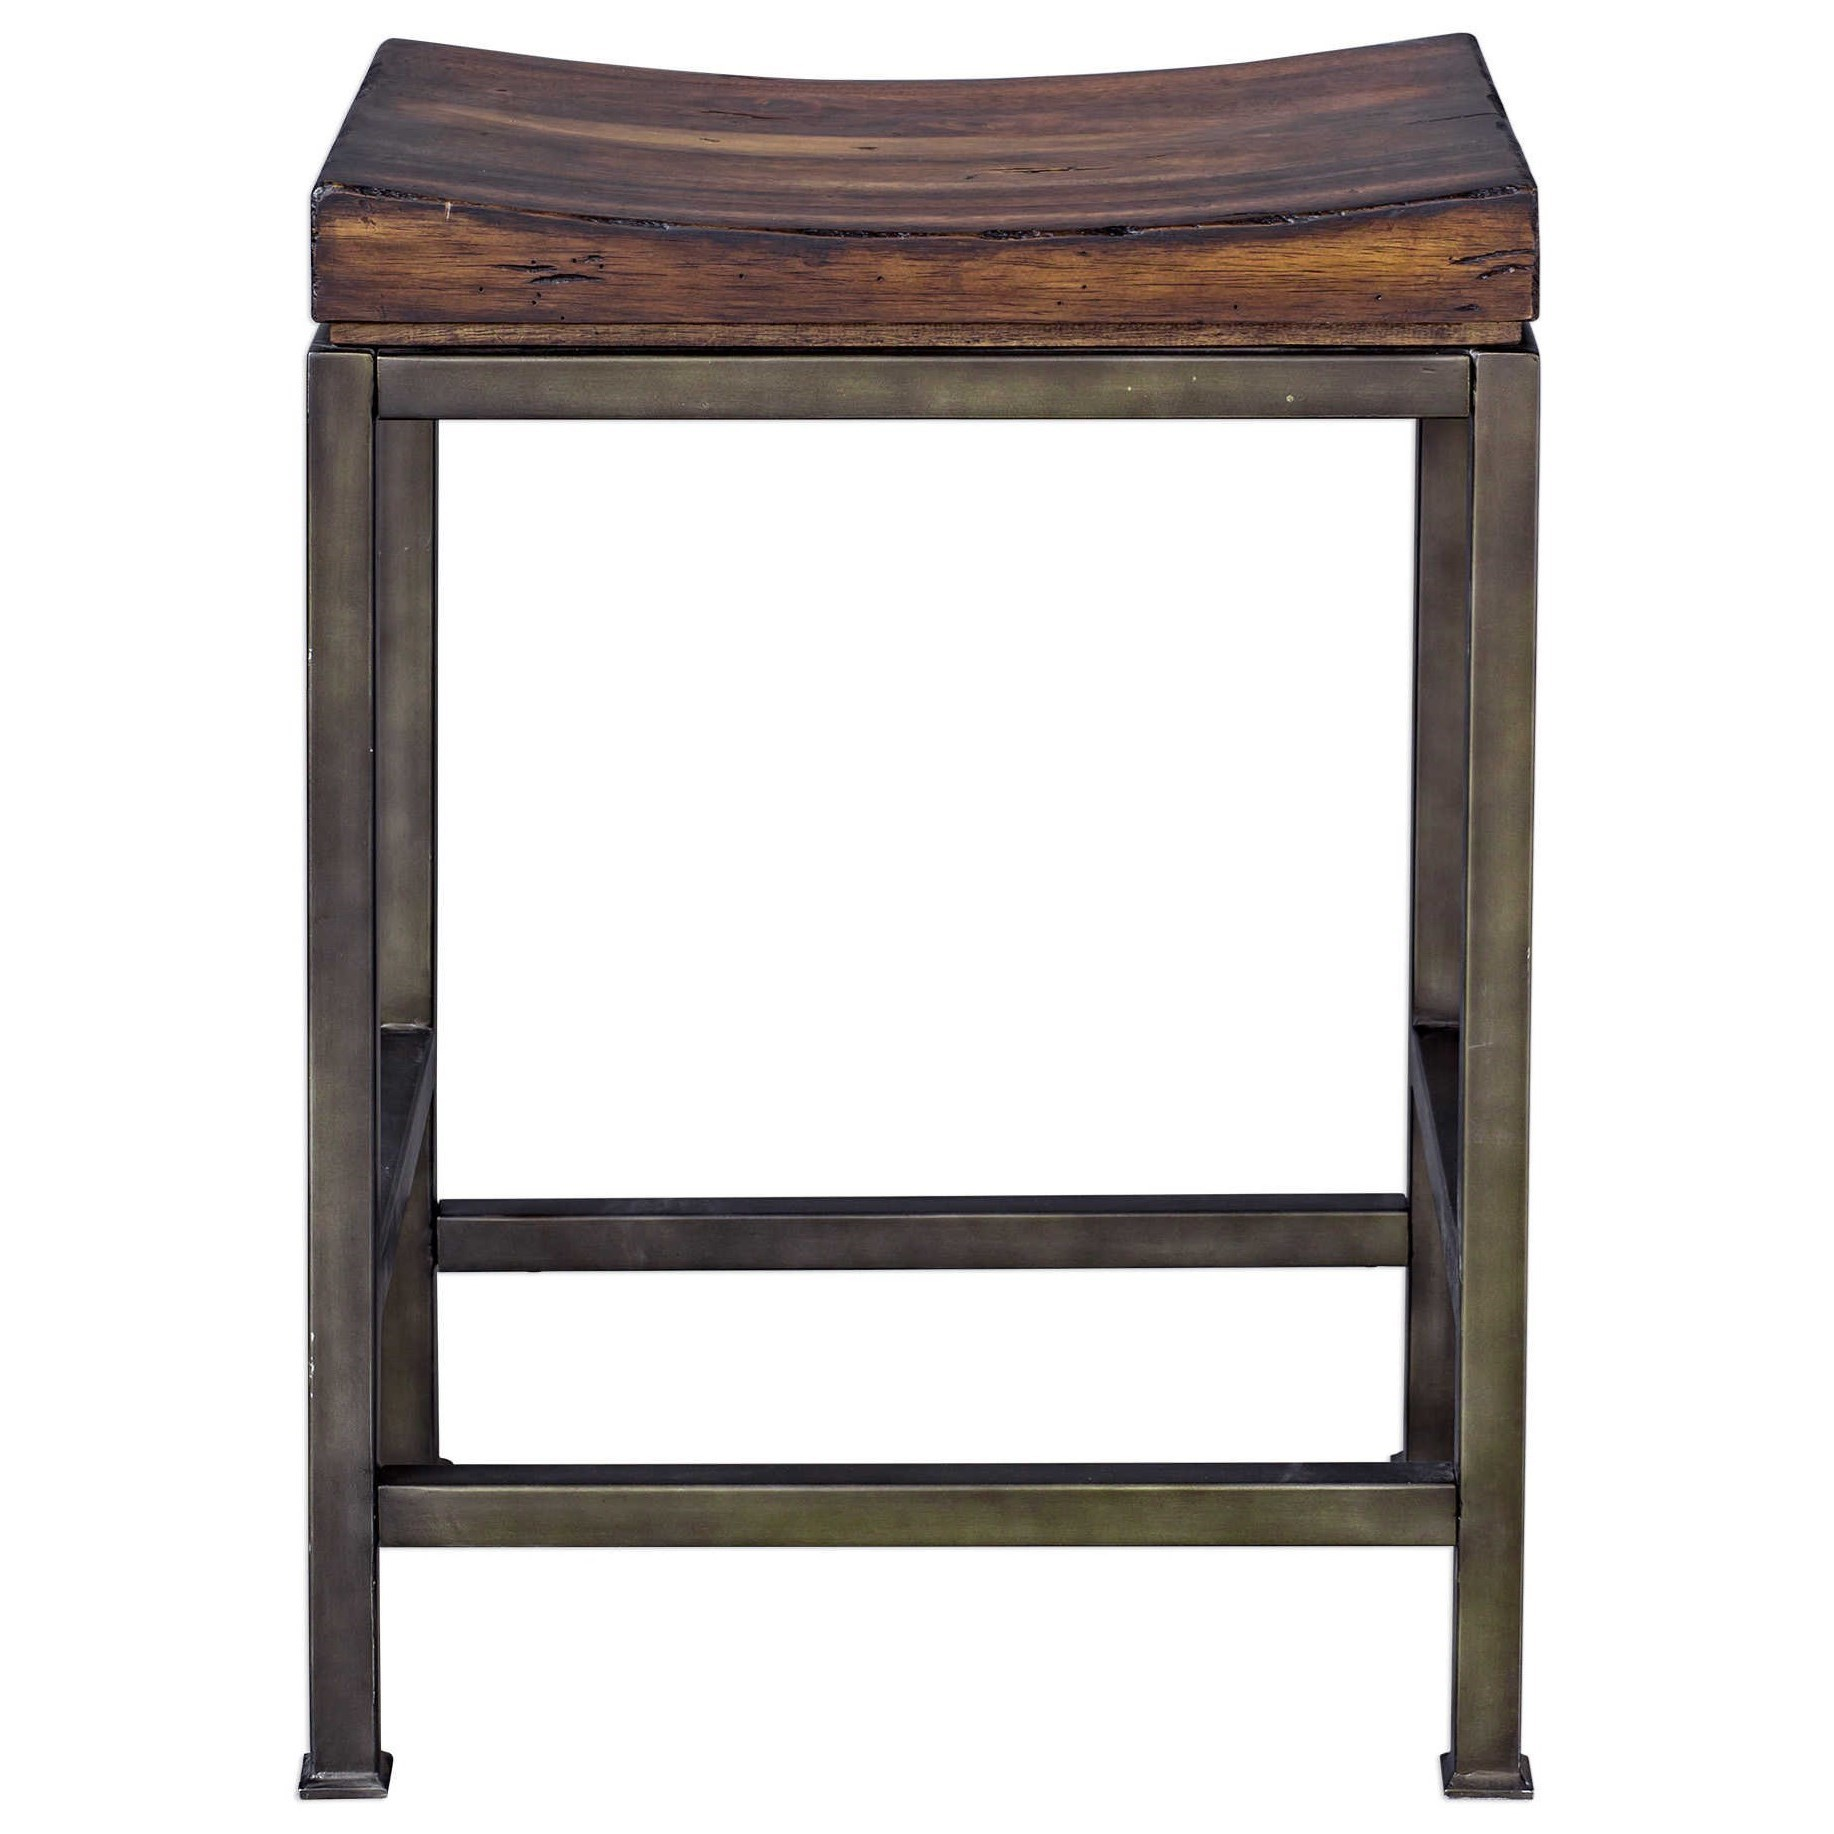 Accent Furniture - Stools Beck Wood Counter Stool by Uttermost at Suburban Furniture